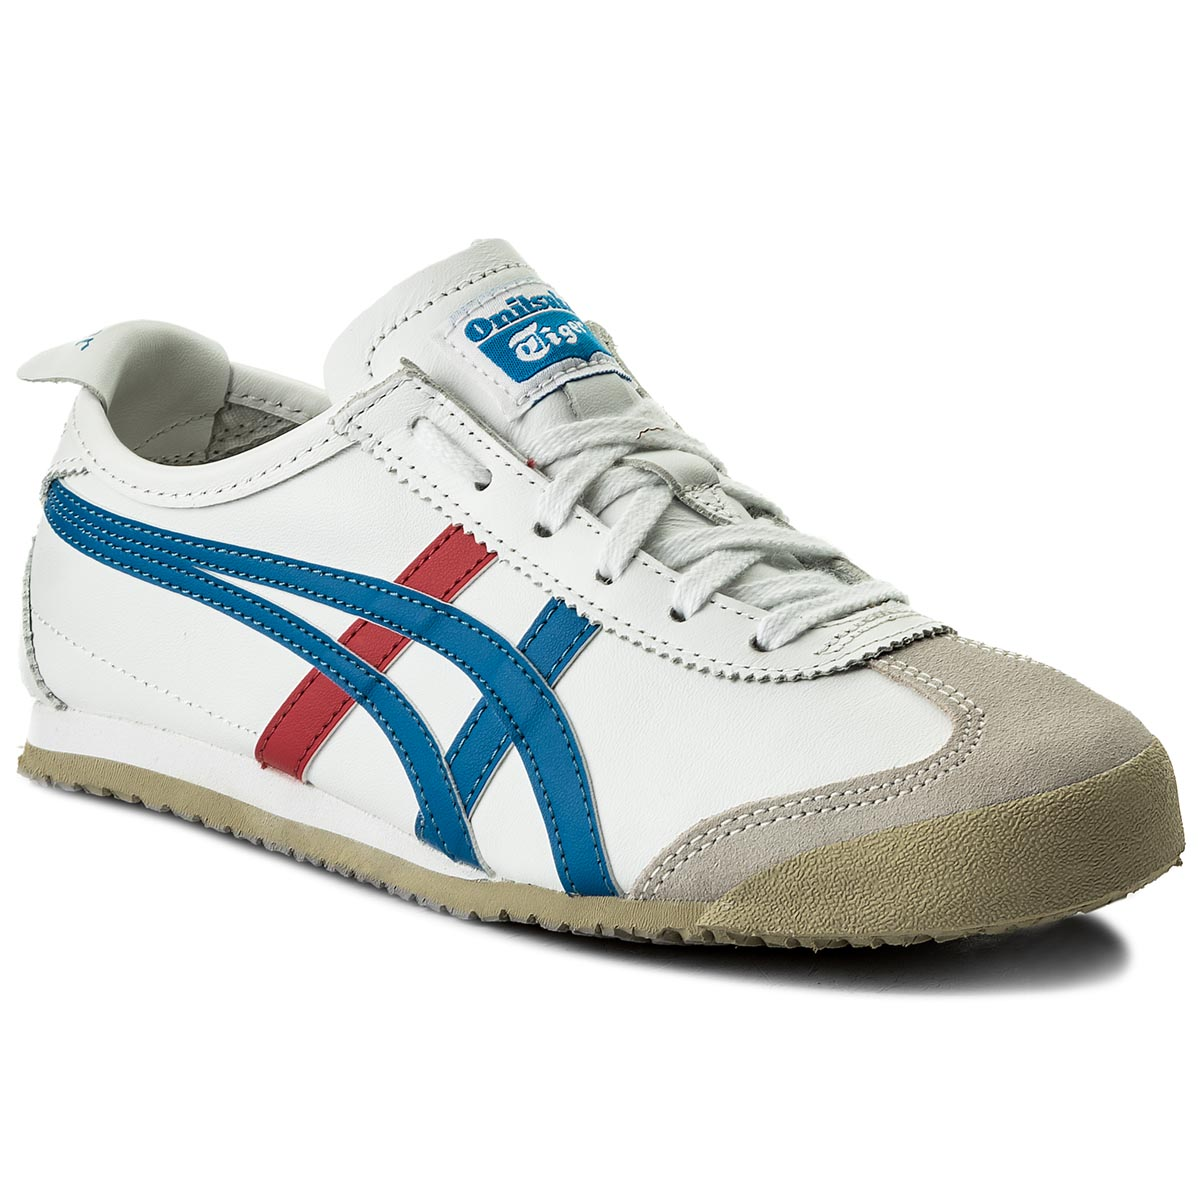 Sneaker Onitsuka Tiger Sneakers ONITSUKA TIGER - Mexico 66 DL408 White/Blue 0146